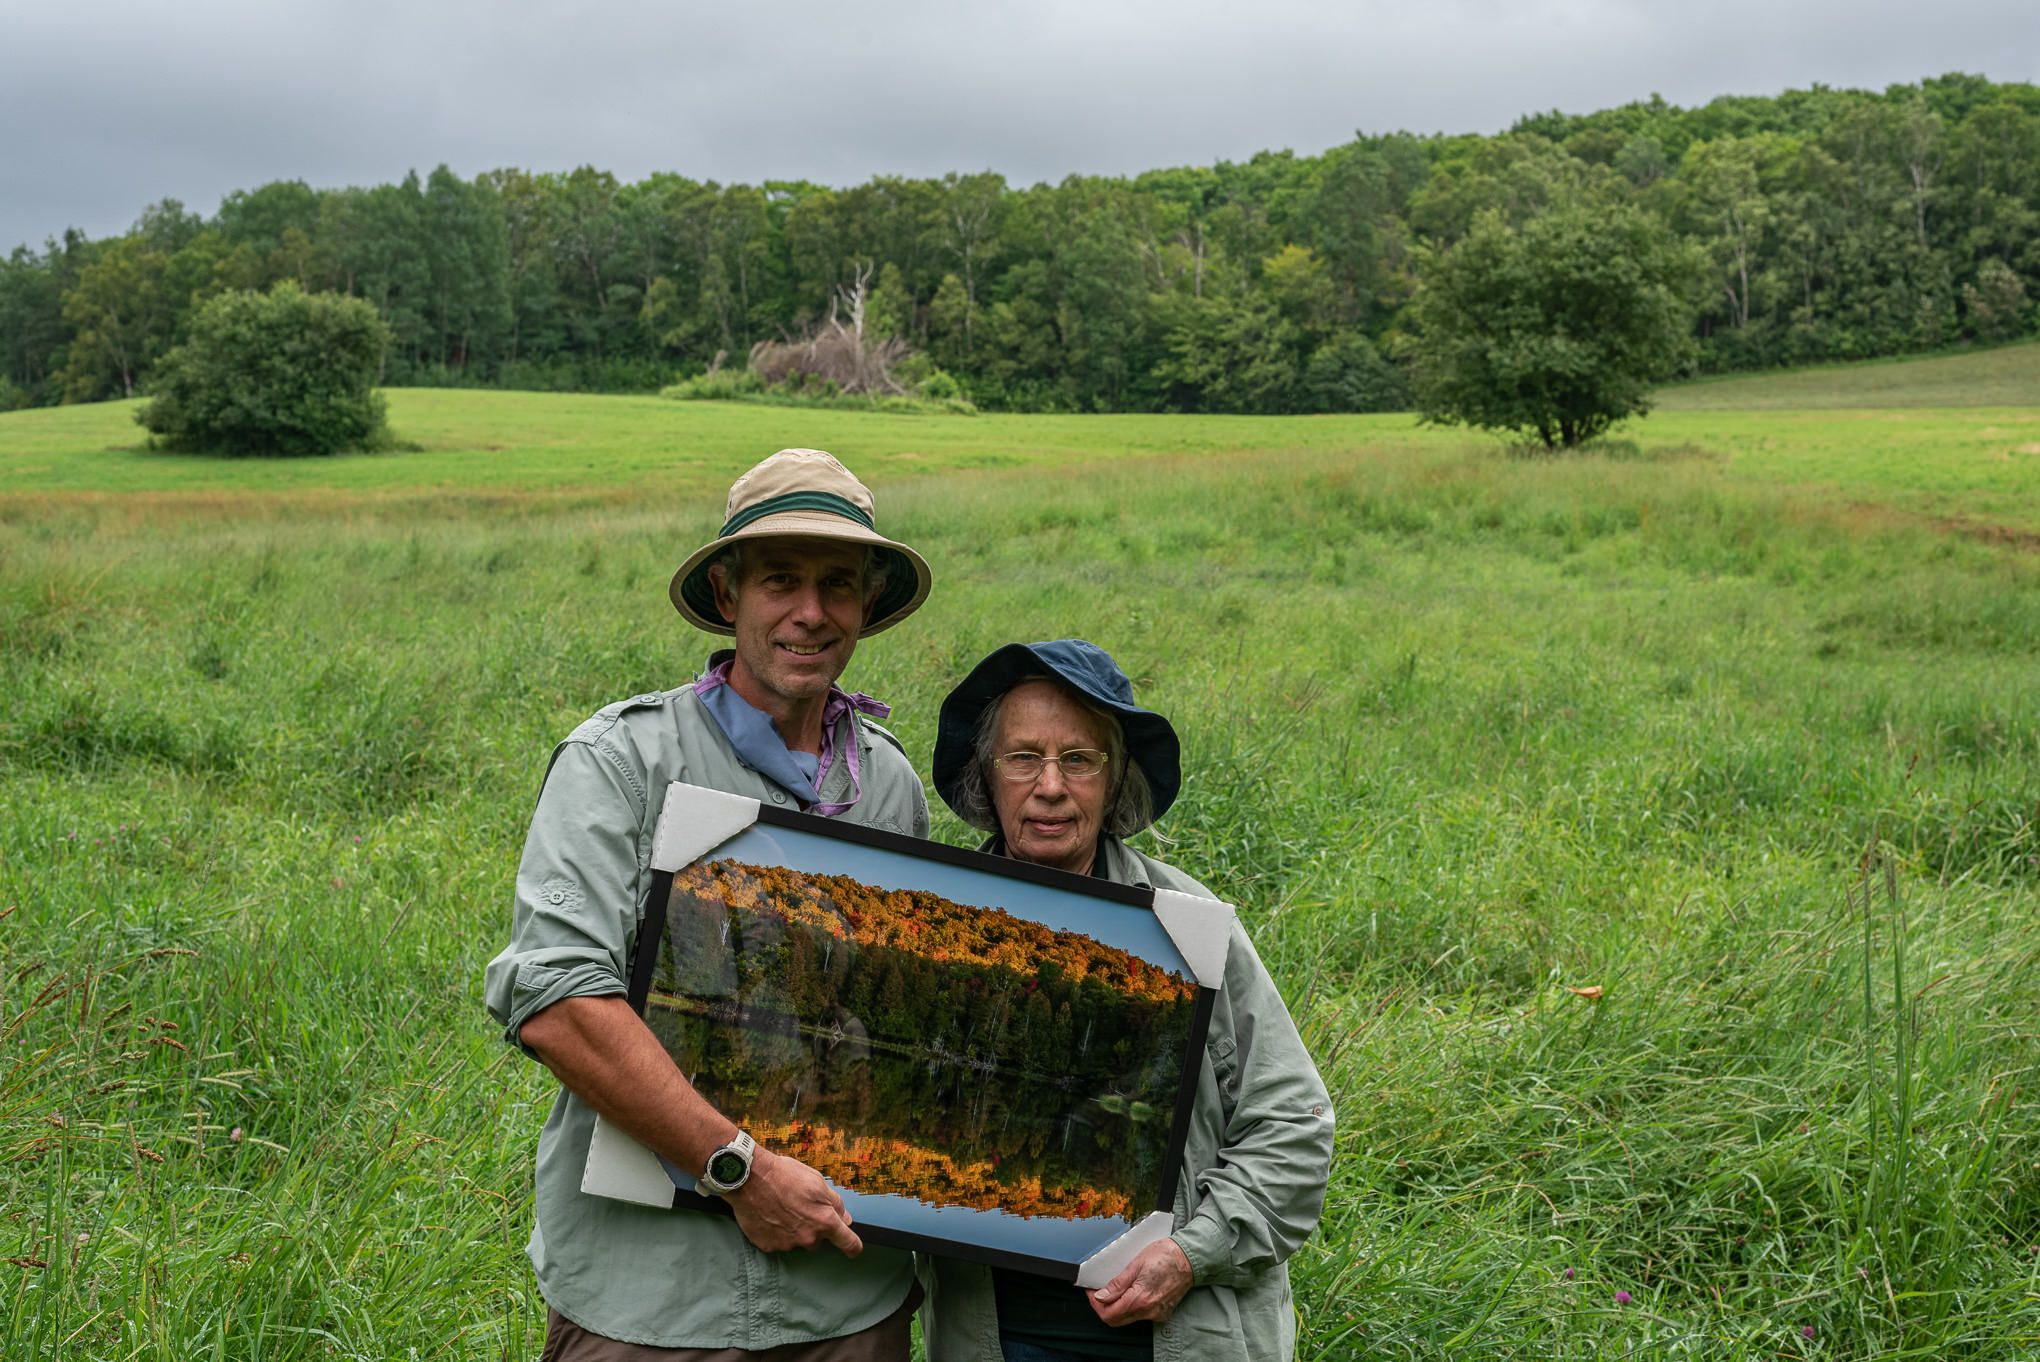 A man and woman hold a framed photo of trees.